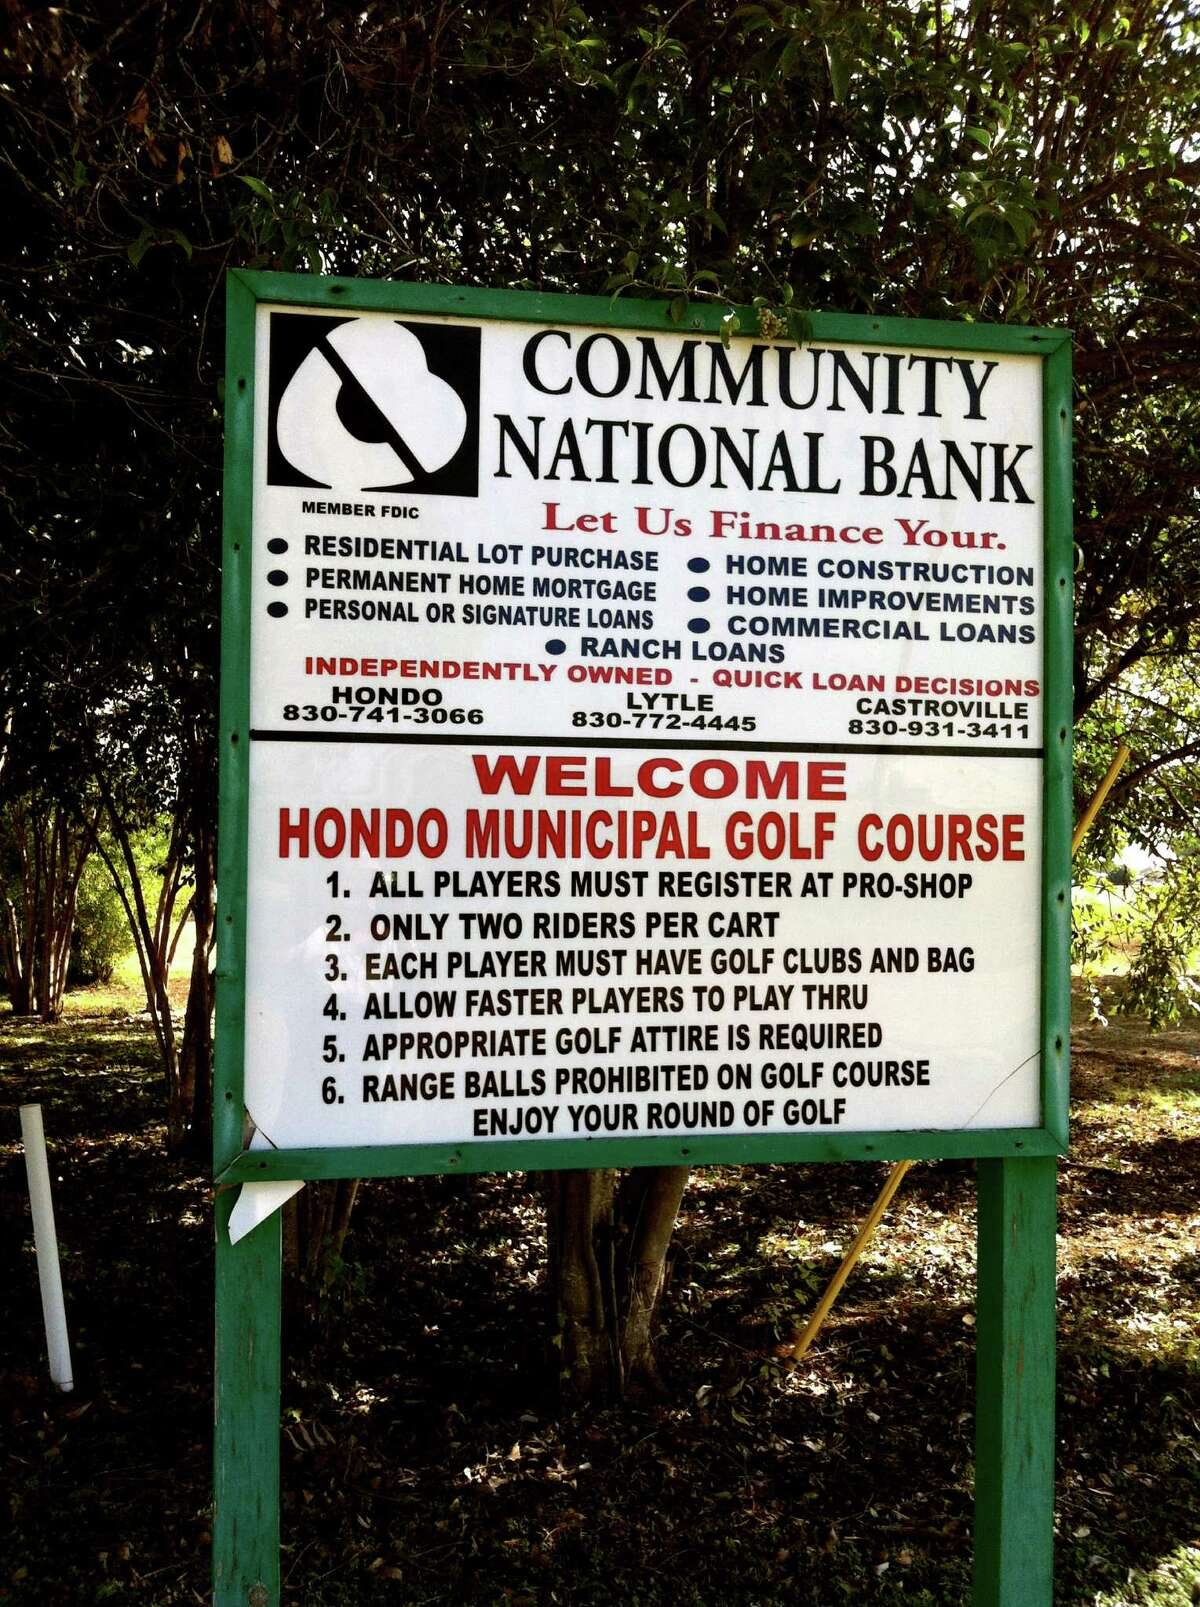 The Hondo Municipal Golf Course is a links-style, small-town nine-hole course that offers a relaxed setting for beginners or those wishing to work on different parts of their game.